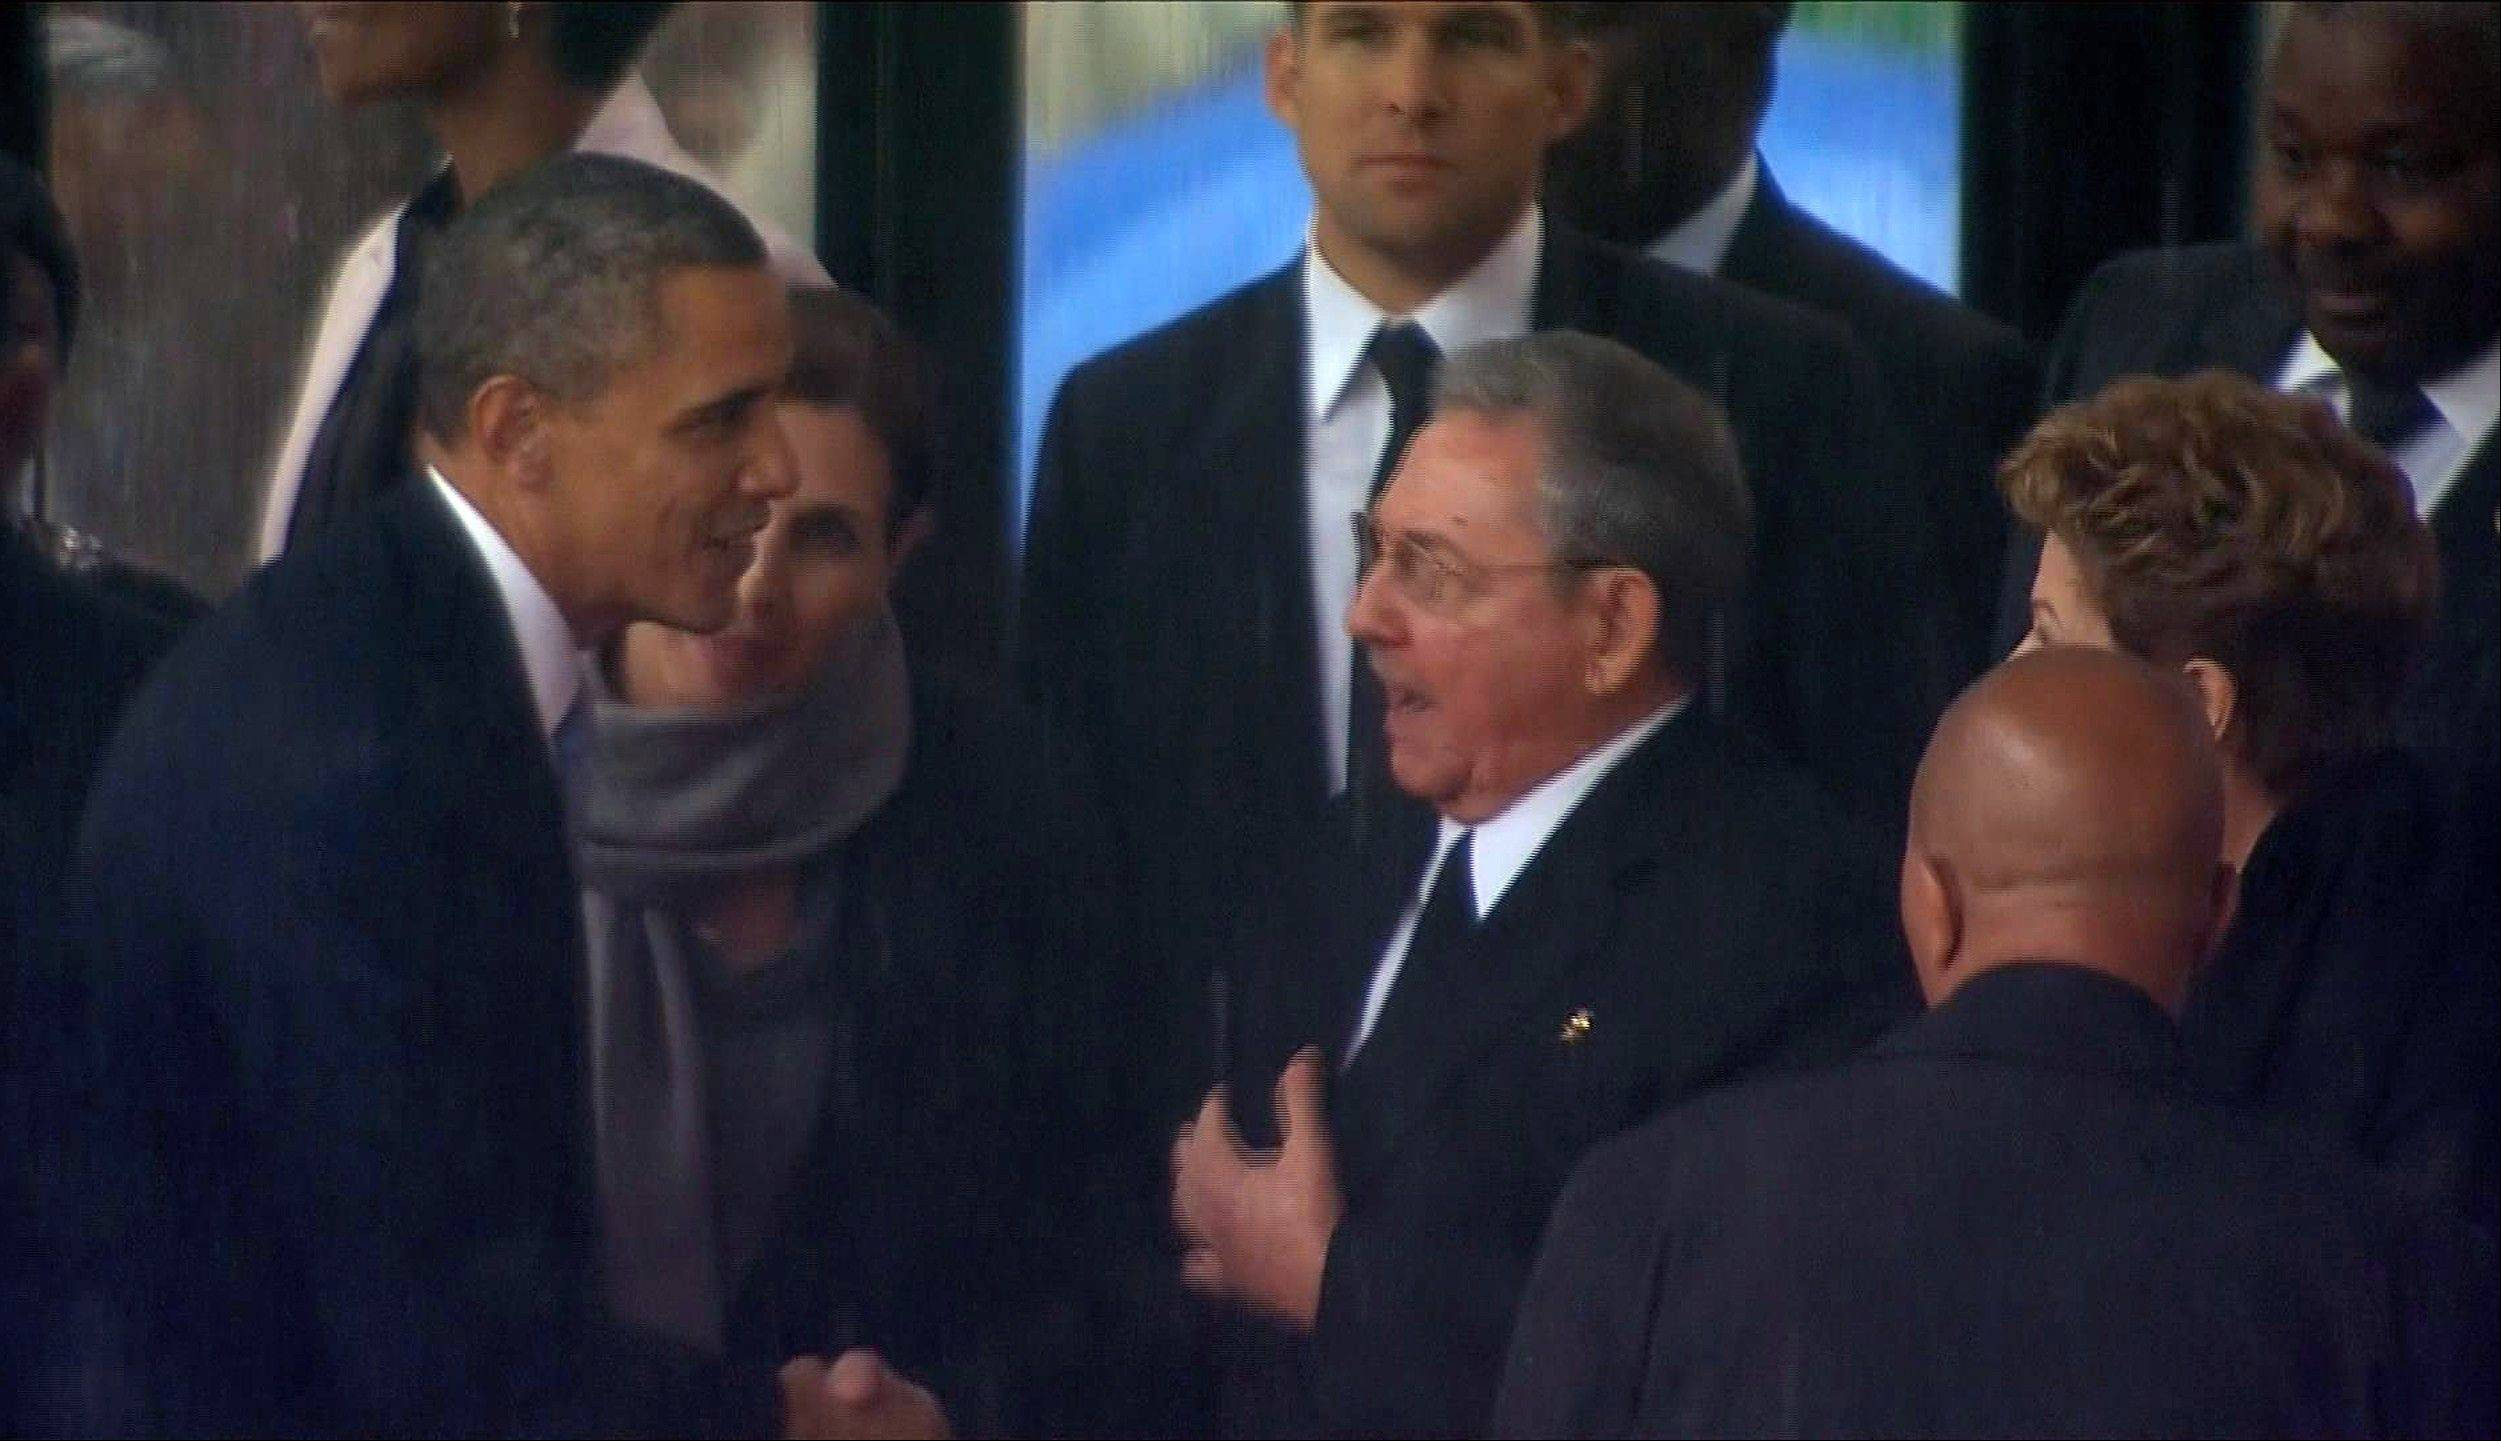 In this image from TV, U.S. President Barack Obama shakes hands with Cuban President Raul Castro at the FNB Stadium in Soweto, South Africa, in the rain for a memorial service for former South African President Nelson Mandela, Tuesday Dec. 10, 2013.